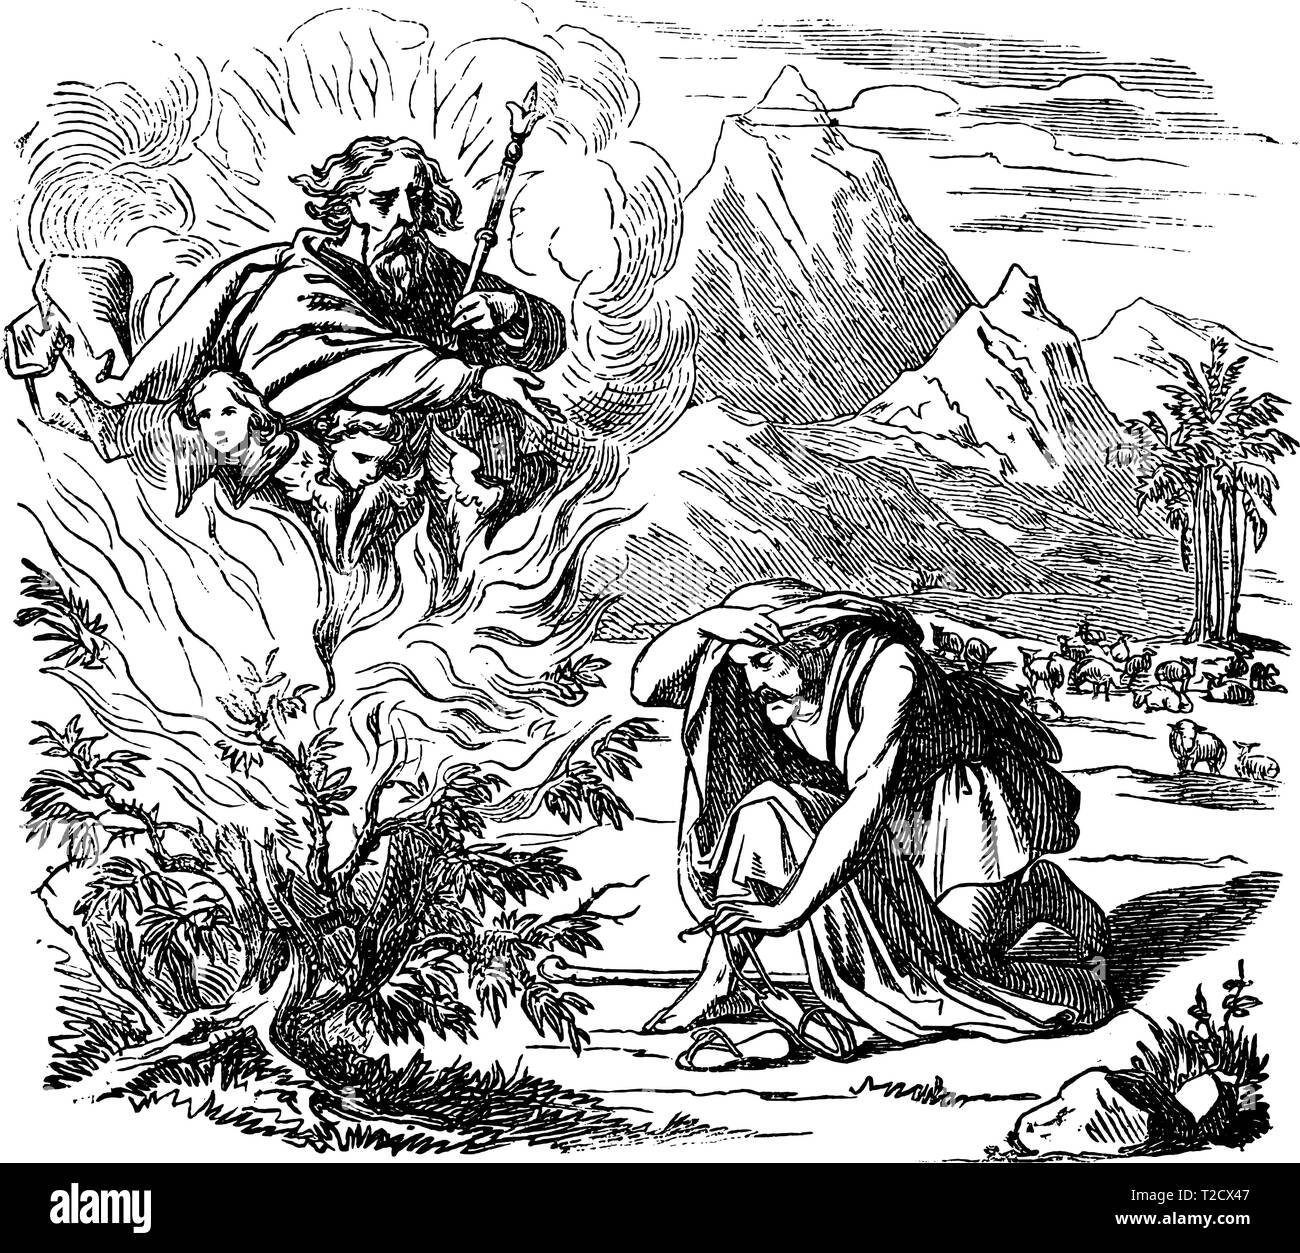 Vintage antique illustration and line drawing or engraving of biblical story of Moses and the burning bush.From Biblische Geschichte des alten und neuen Testaments, Germany 1859.Exodus 3. Man looking on bush in flames, God appears above him. - Stock Vector